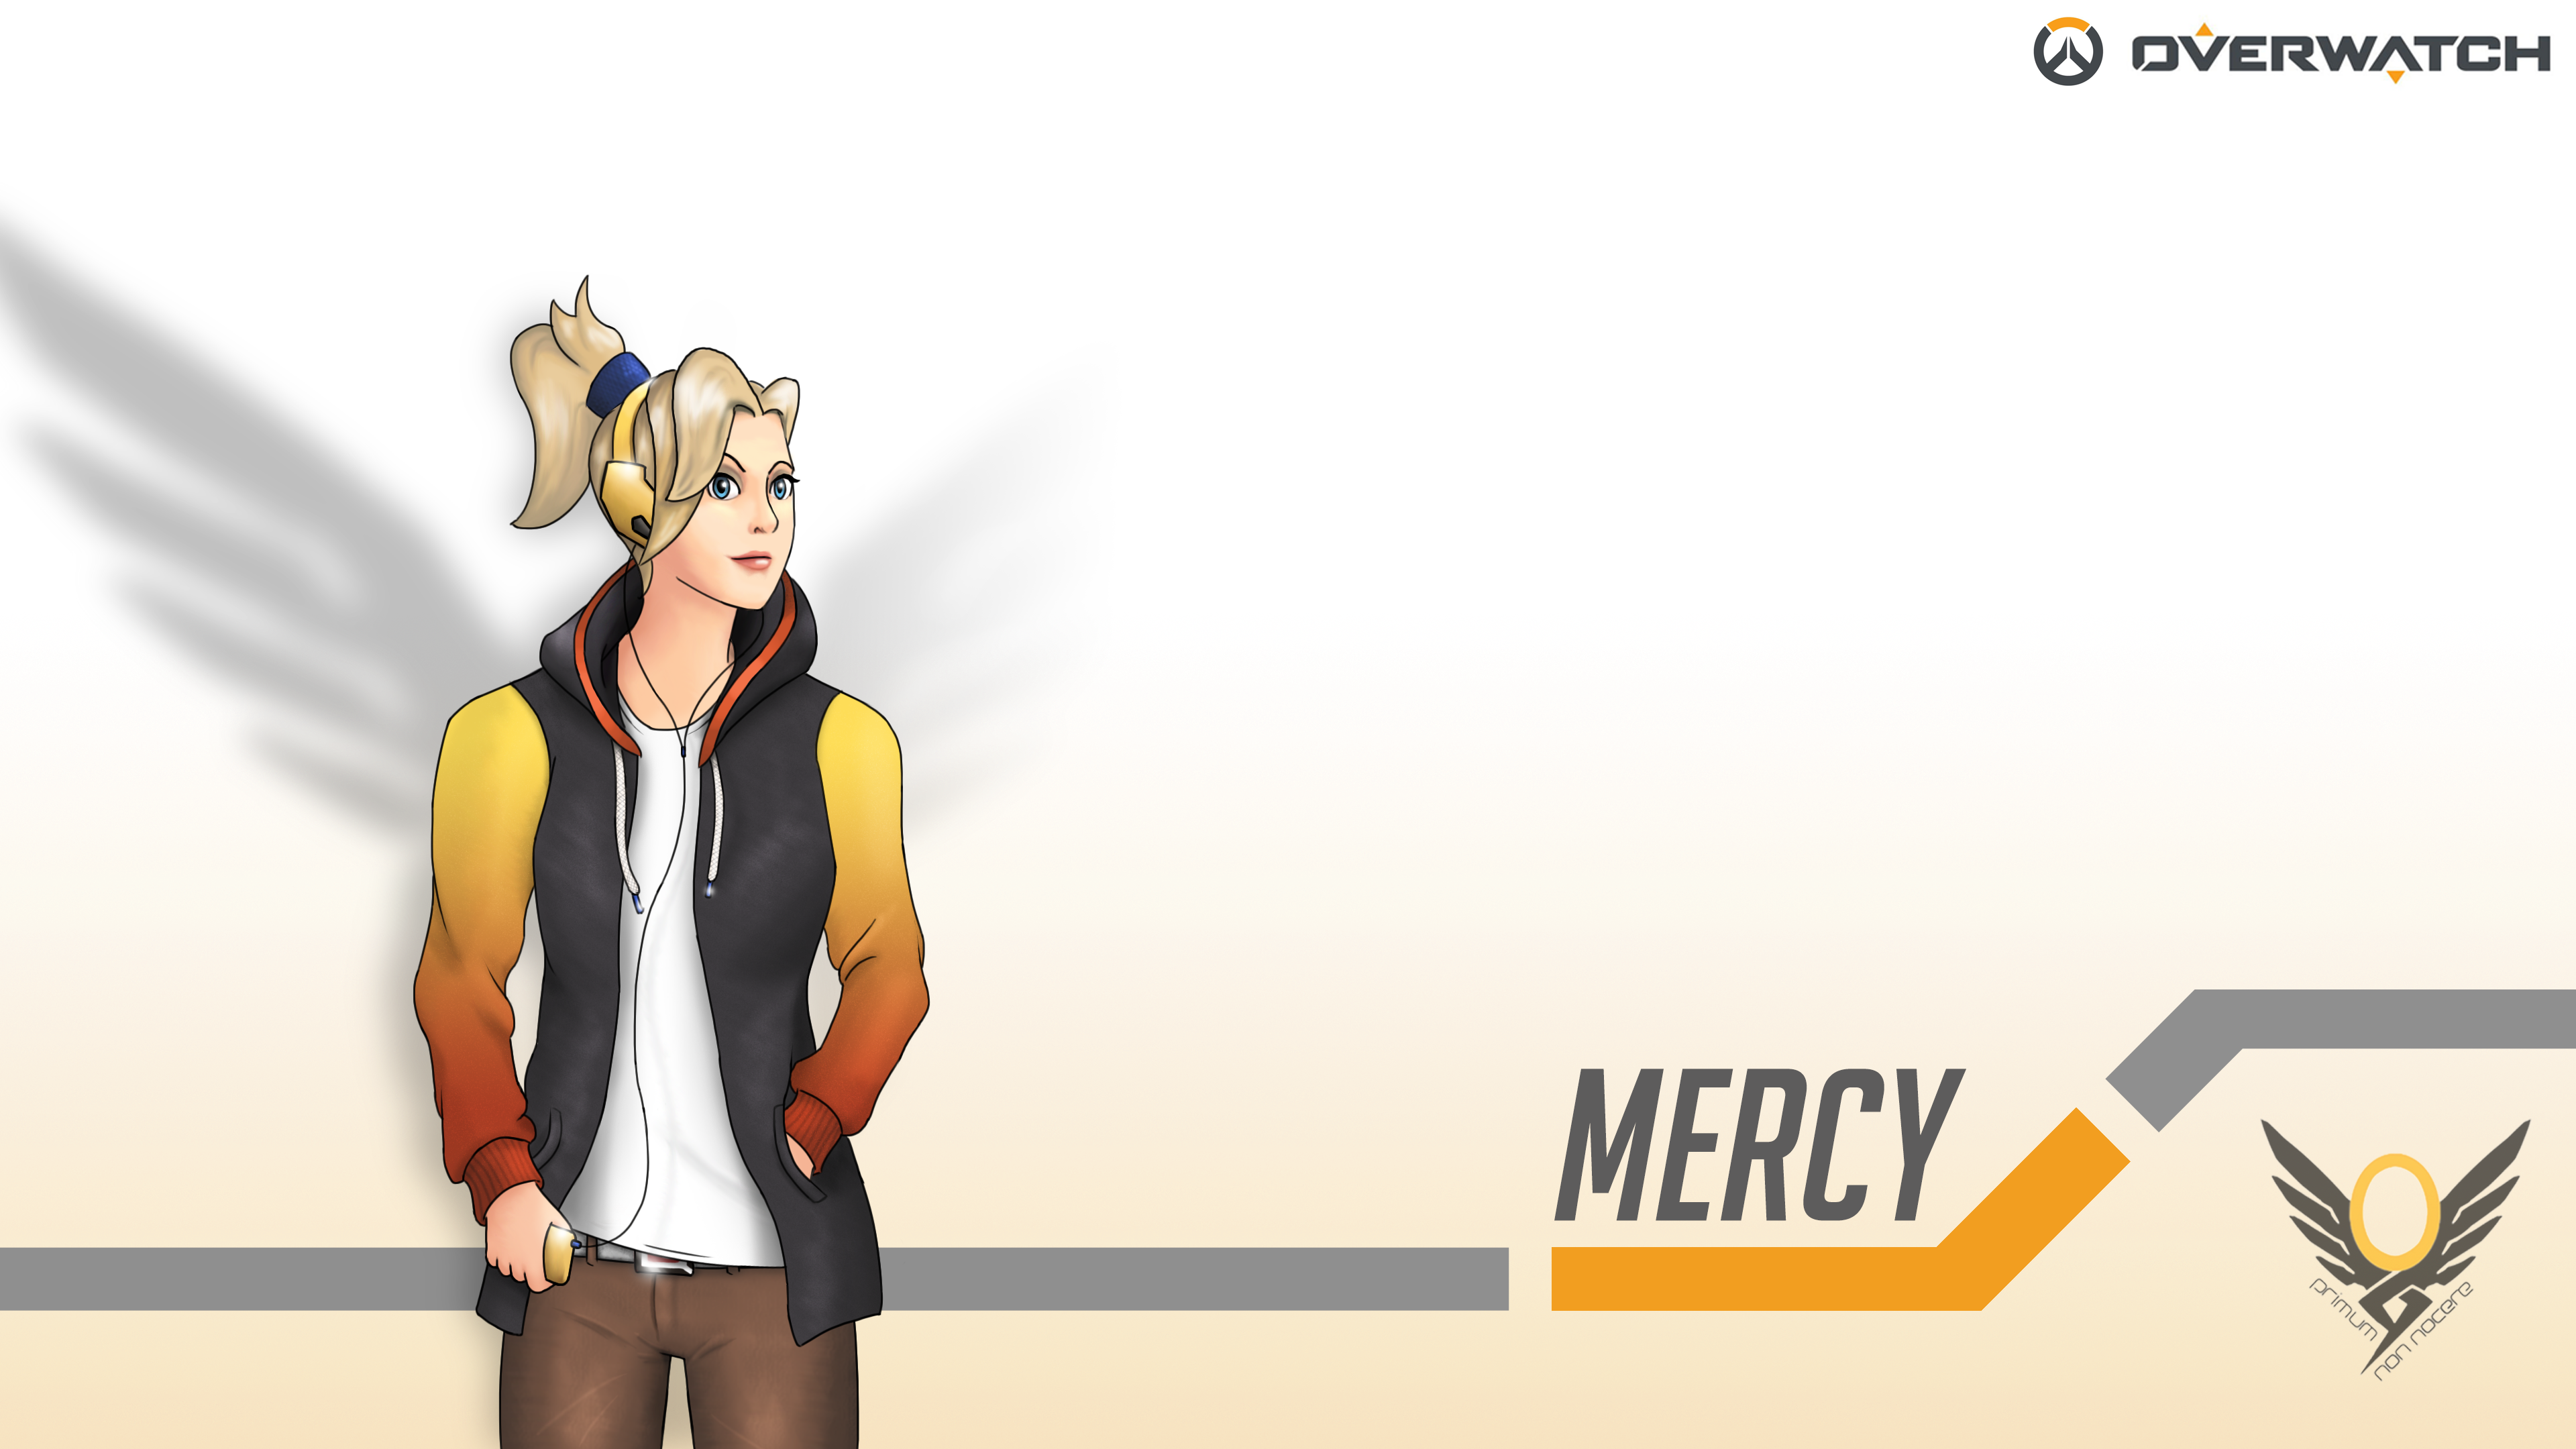 Casual Overwatch Mercy 4k Wallpaper By Miltonholmes On